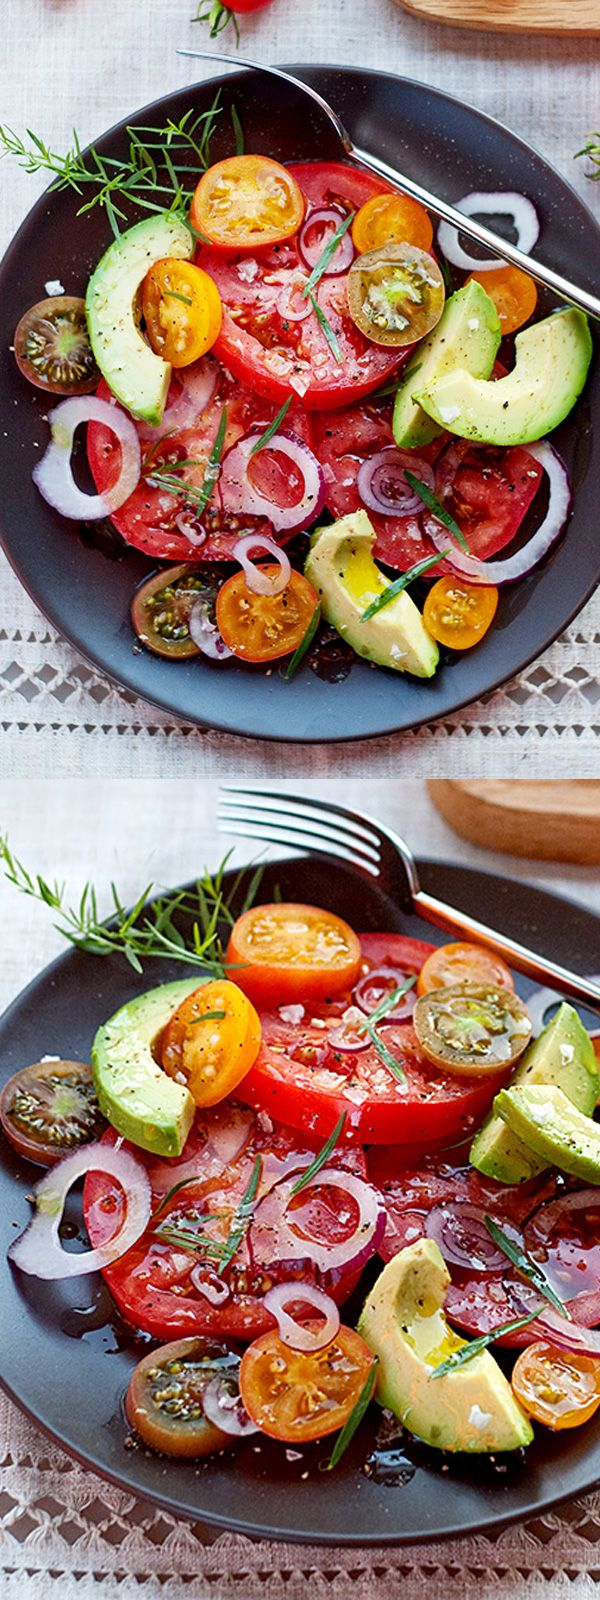 Salade tomates et avocats